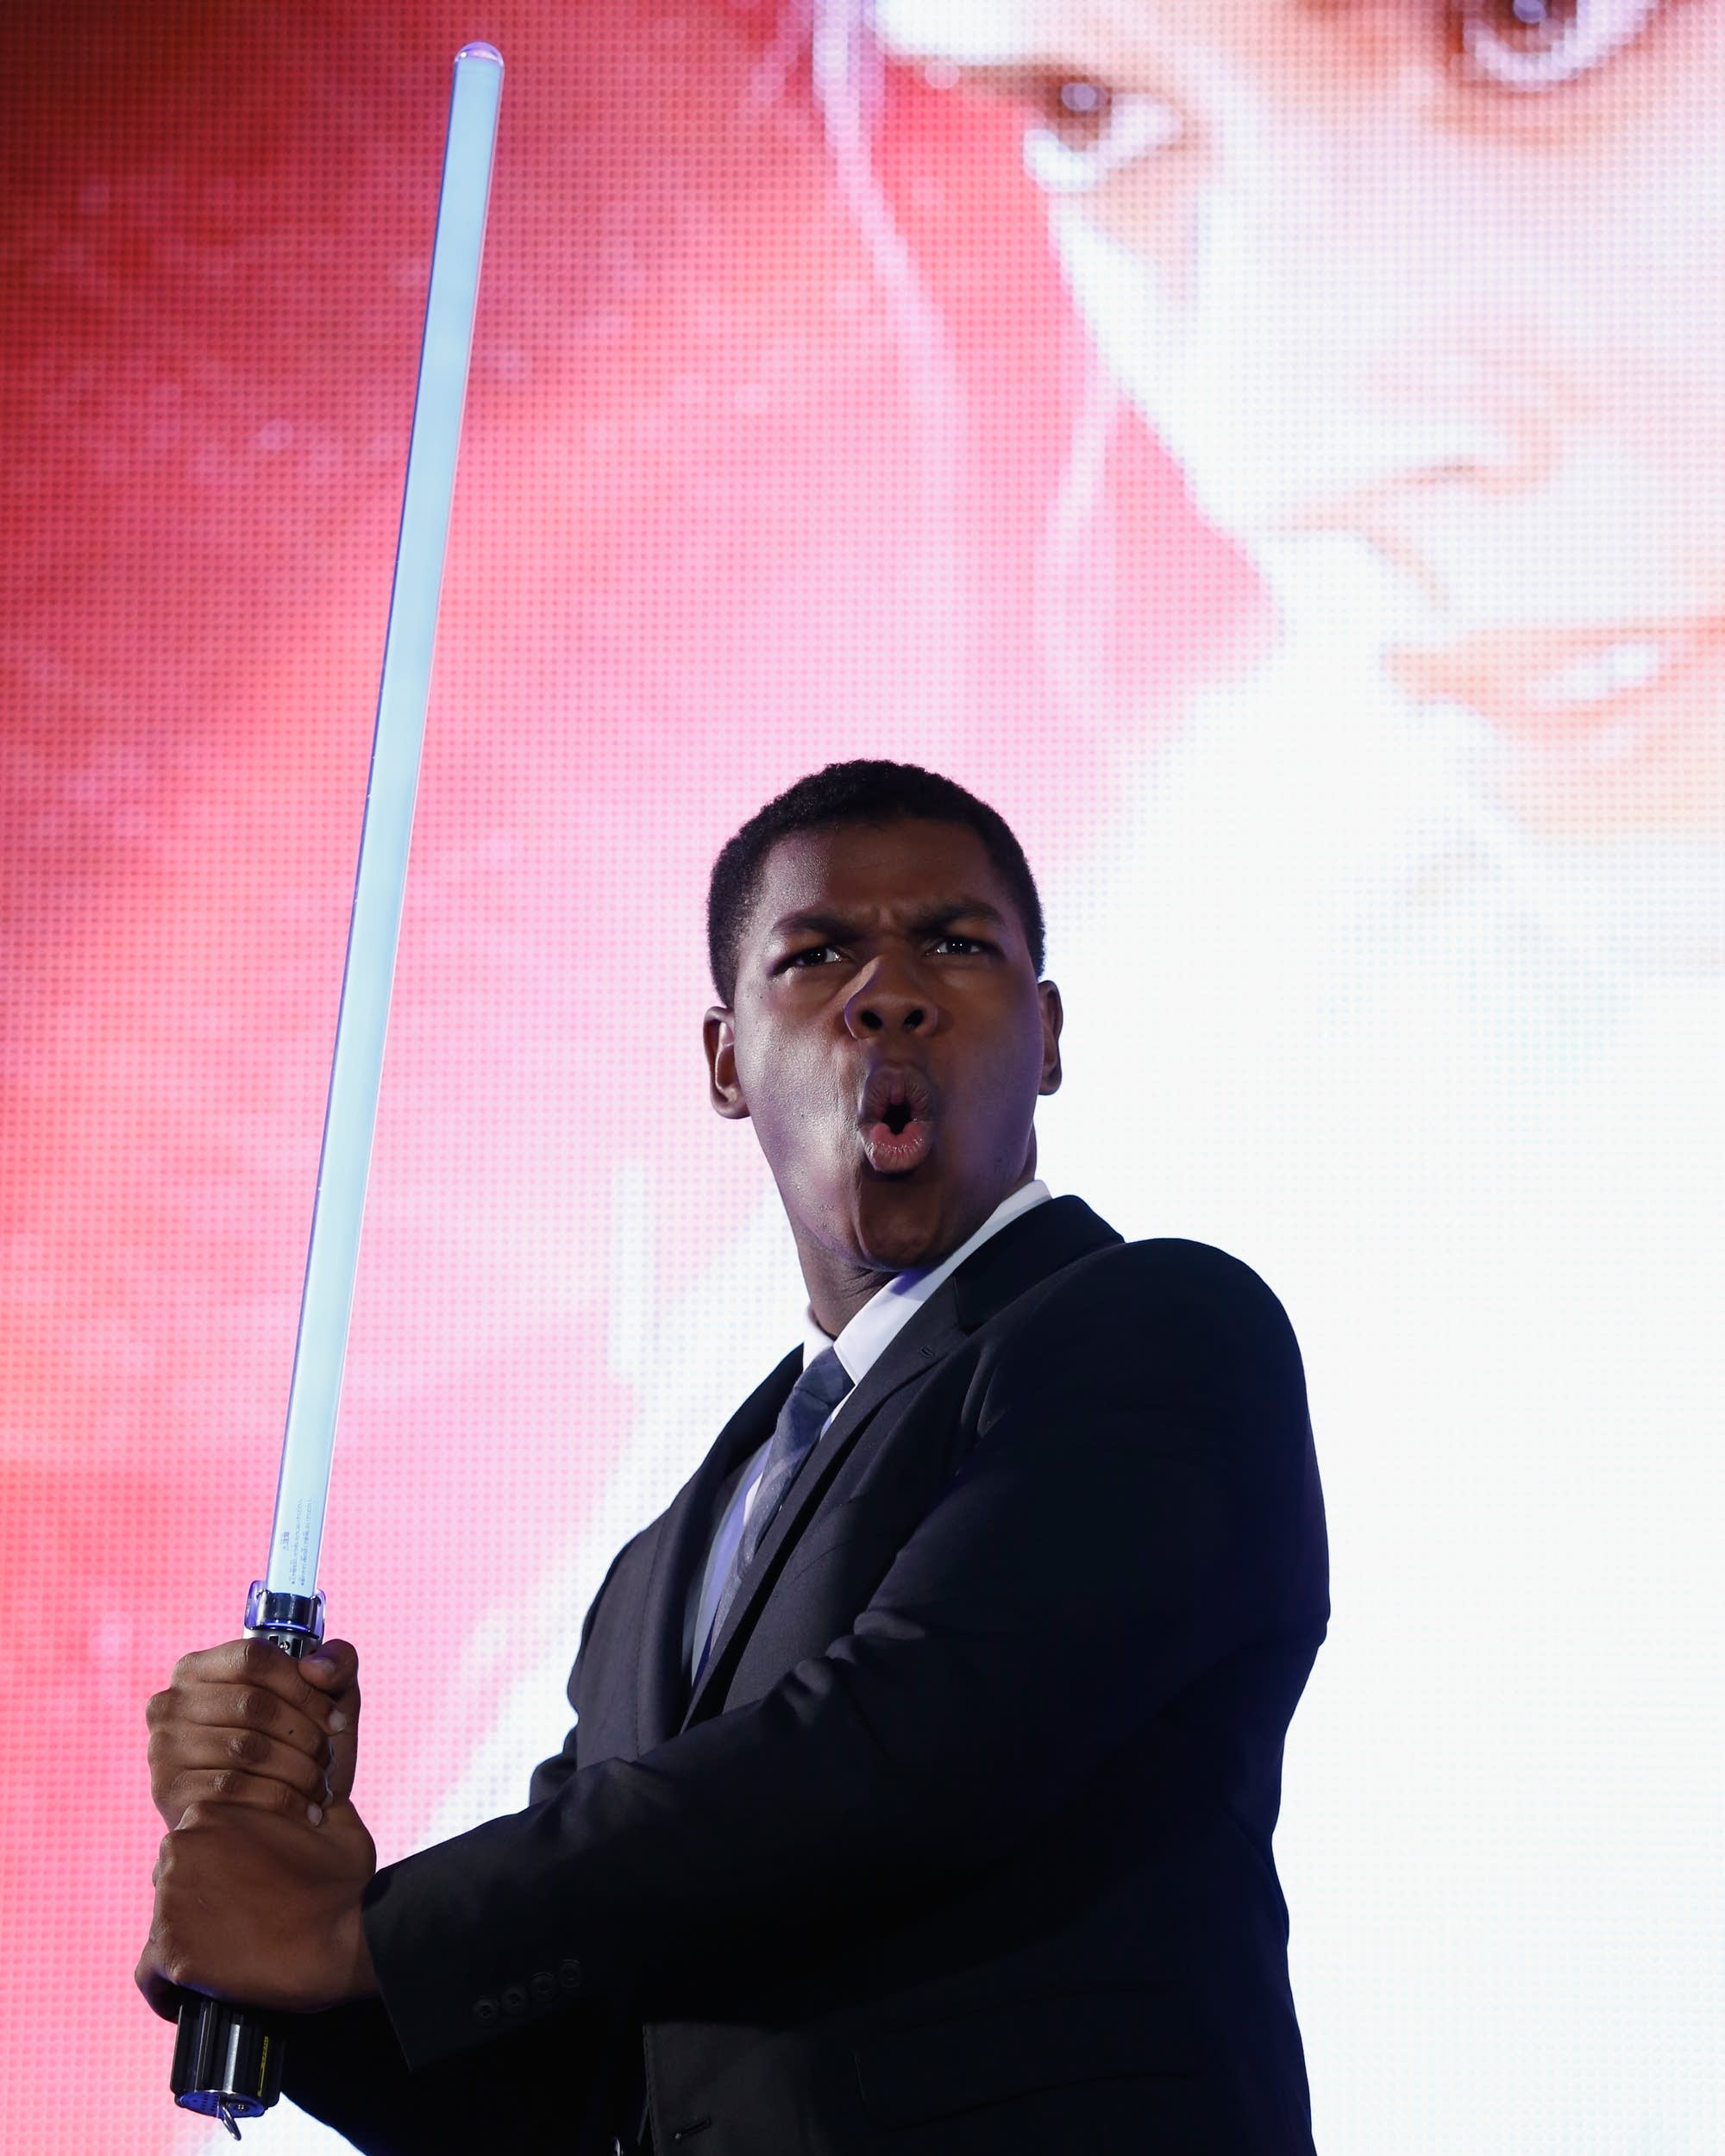 John Boyega with a lightsaber